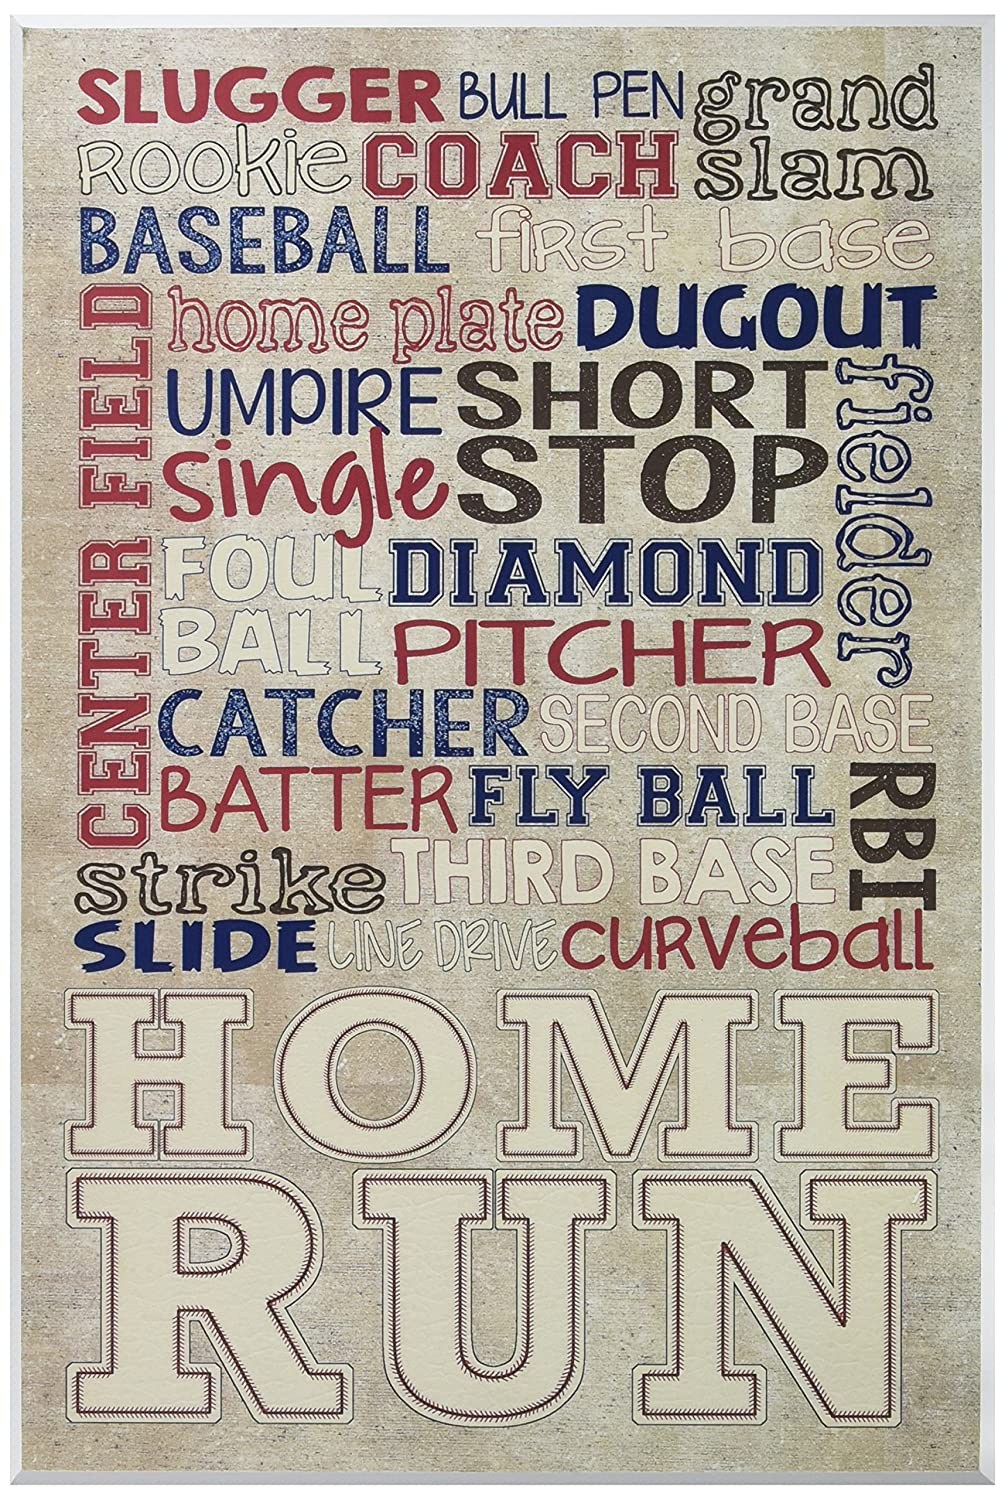 Stupell Home Décor Red White and Blue Baseball Typog Wall Plaque Art, 10 x 0.5 x 15, Proudly Made in USA Stupell Industries brp-1736_wd_10x15